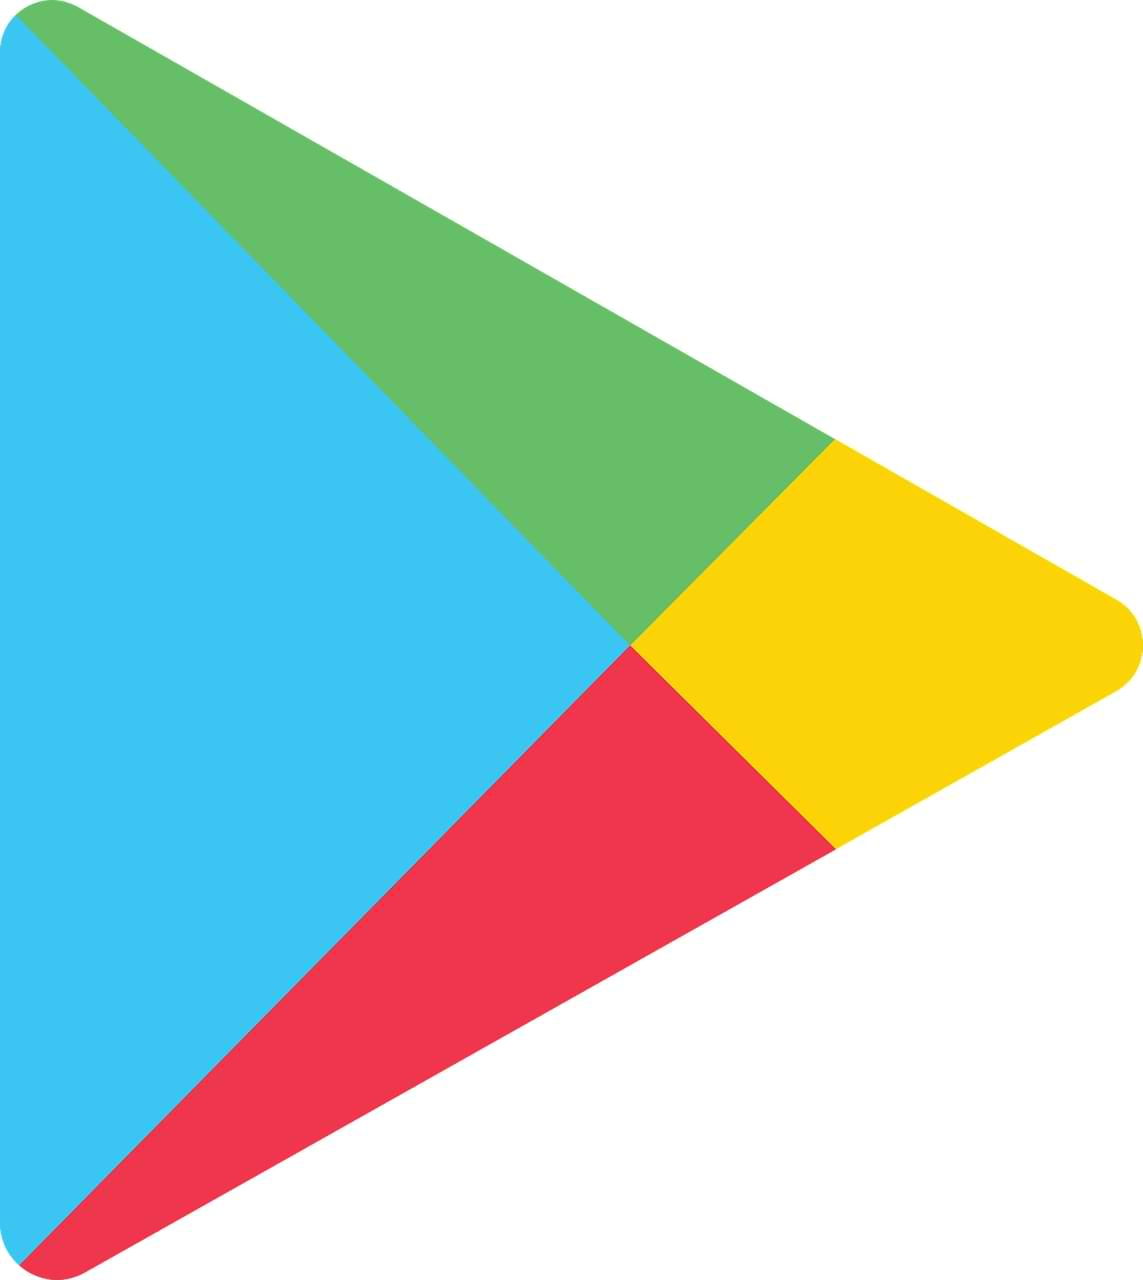 Google Successfully Reaches 28.3 billion Downloads on the Google Play Store